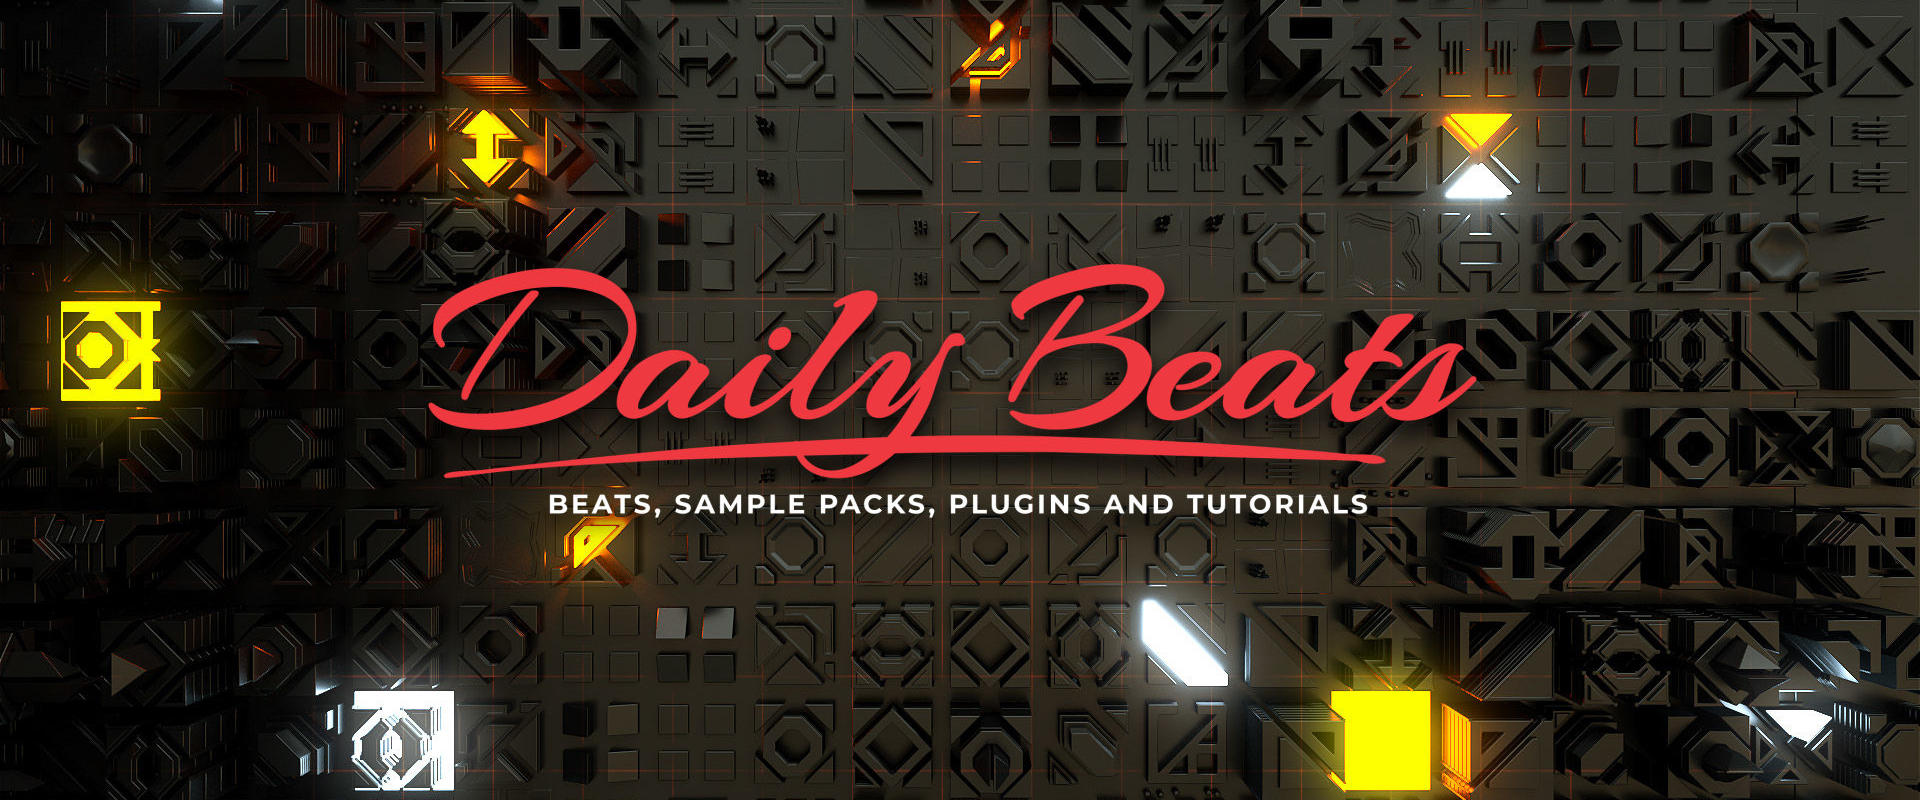 Daily Beats header